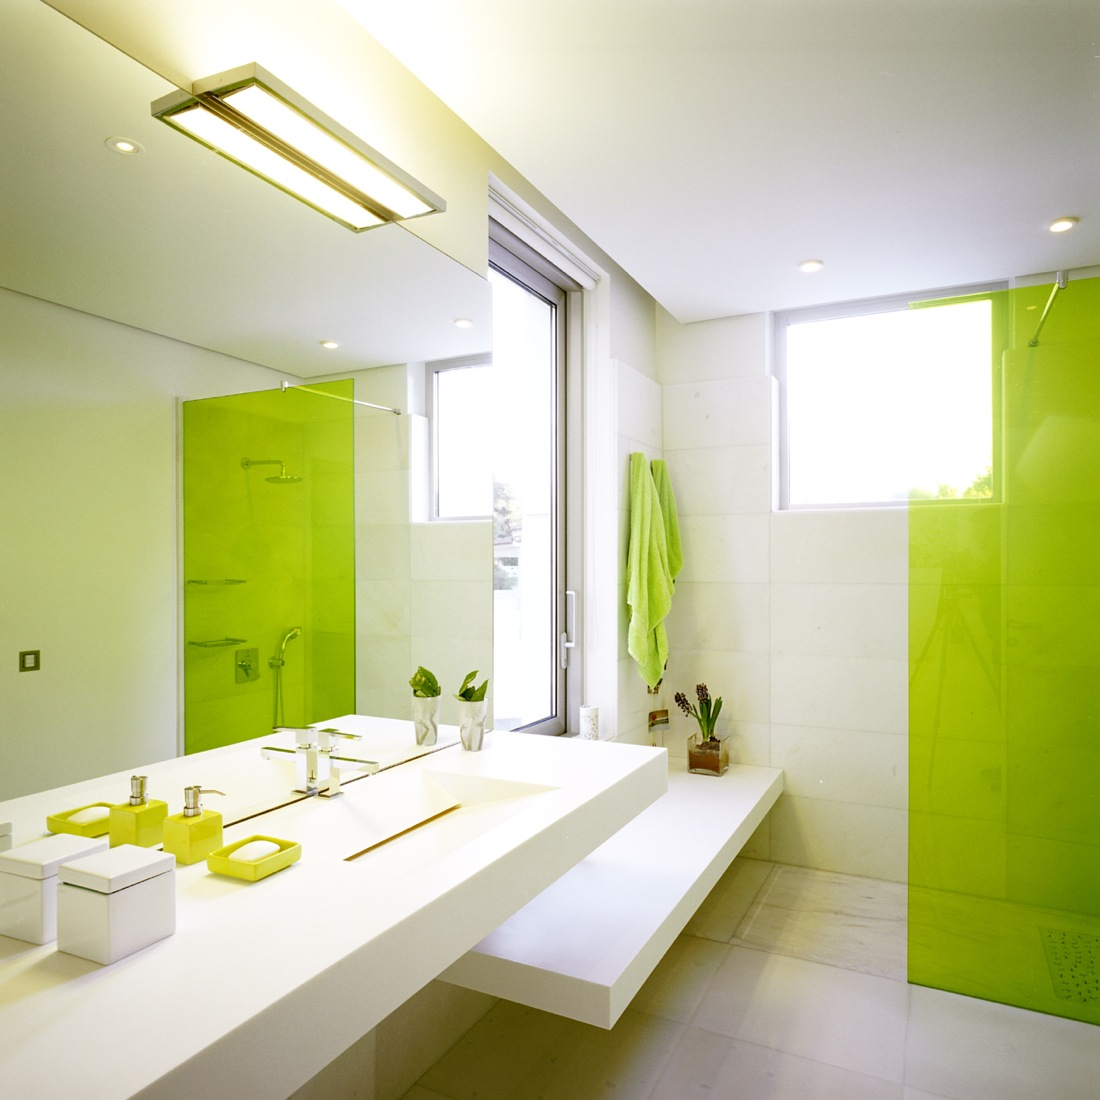 Minimalist bathroom designs home designs project for Home restroom design